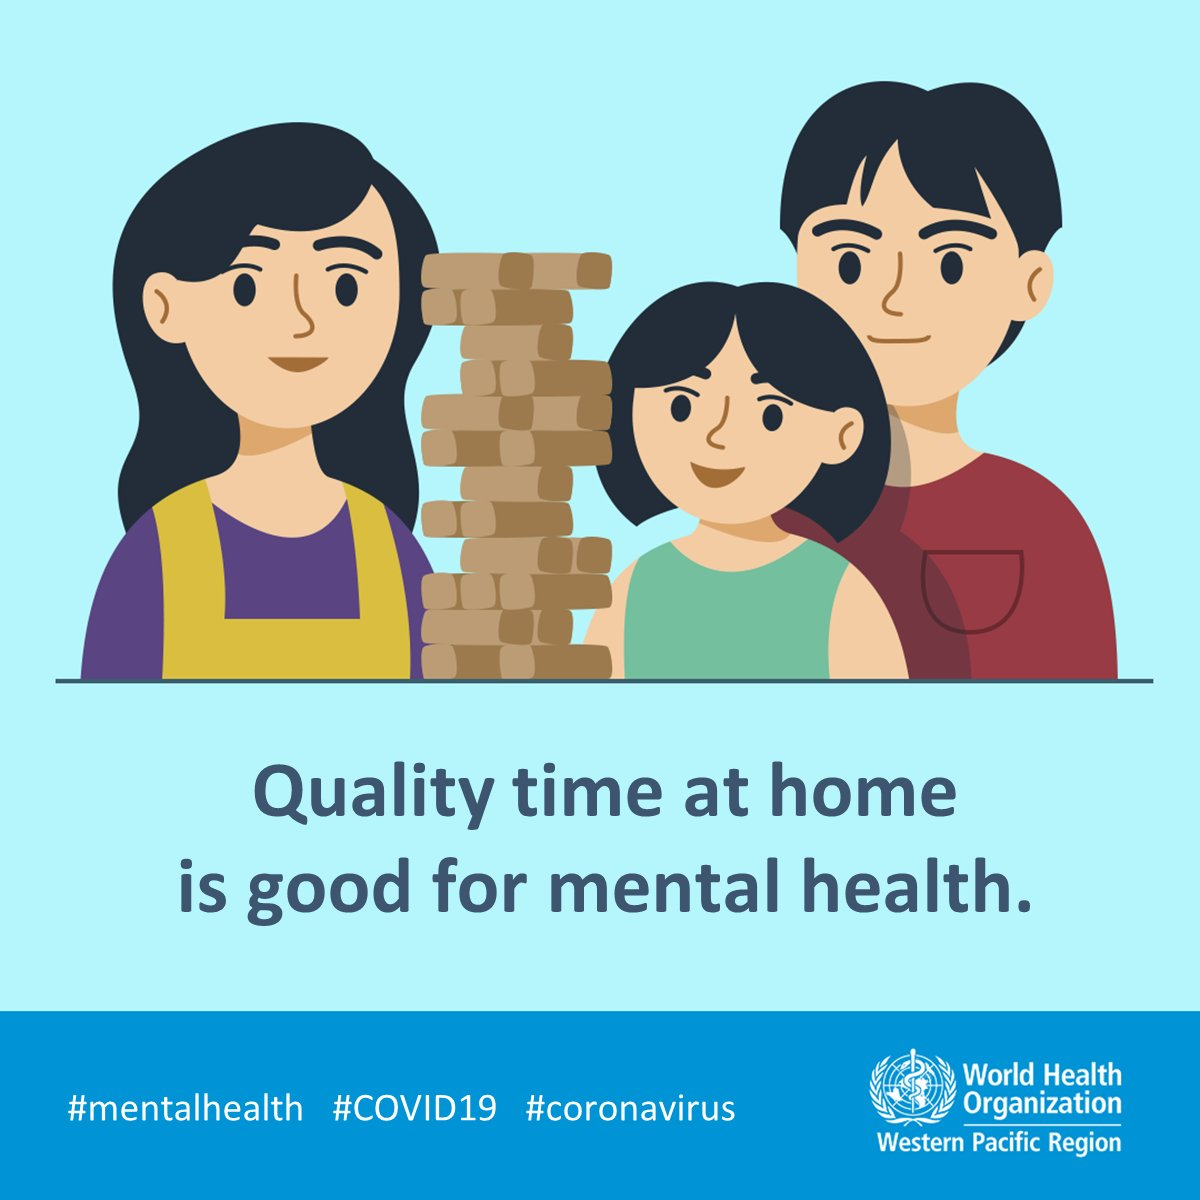 Look after your #MentalHealth during #COVID19: ⌛️prioritize quality time with family 🥗eat healthy meals, get plenty of sleep and exercise 📱 stay virtually connected with friends and family outside your household.  #coronavirus